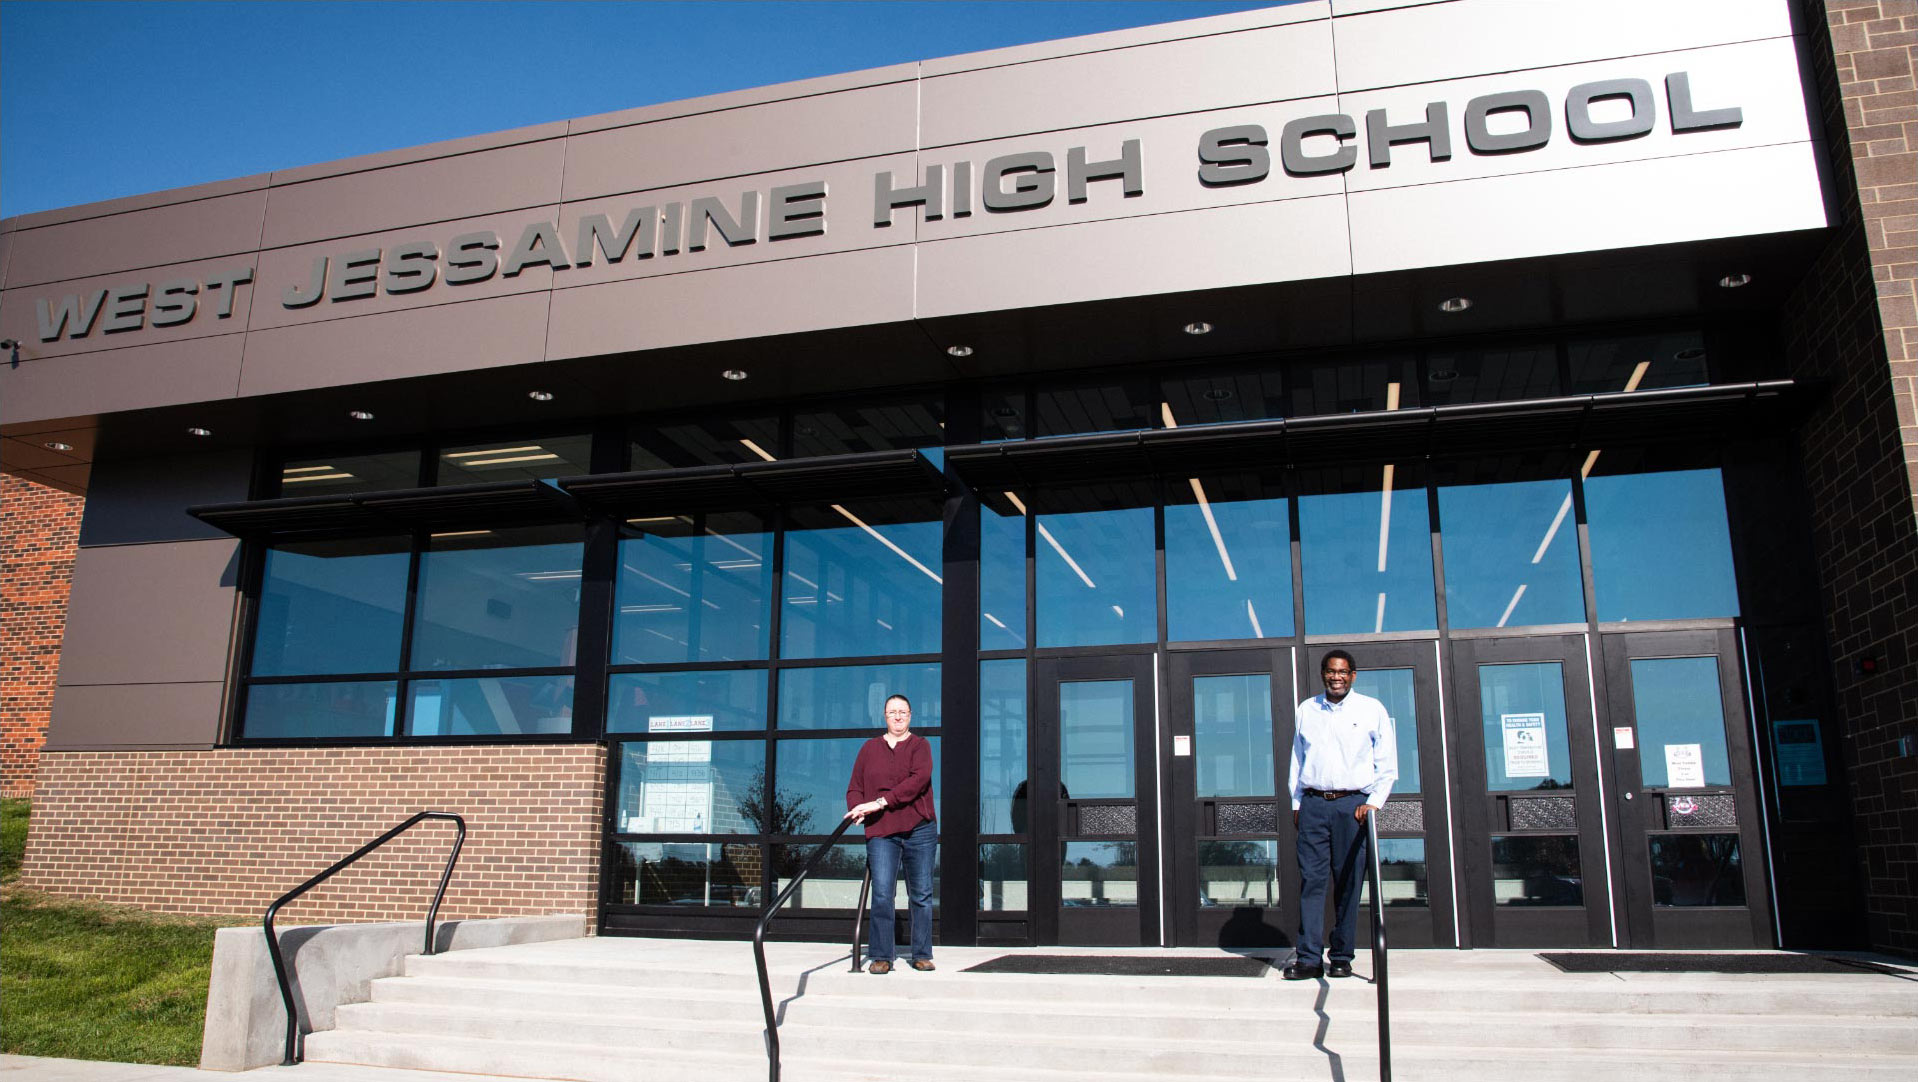 Ivan and Marci stand on the front steps of West Jessamine High School. Both are holding onto the handrails of the steps and smiling.